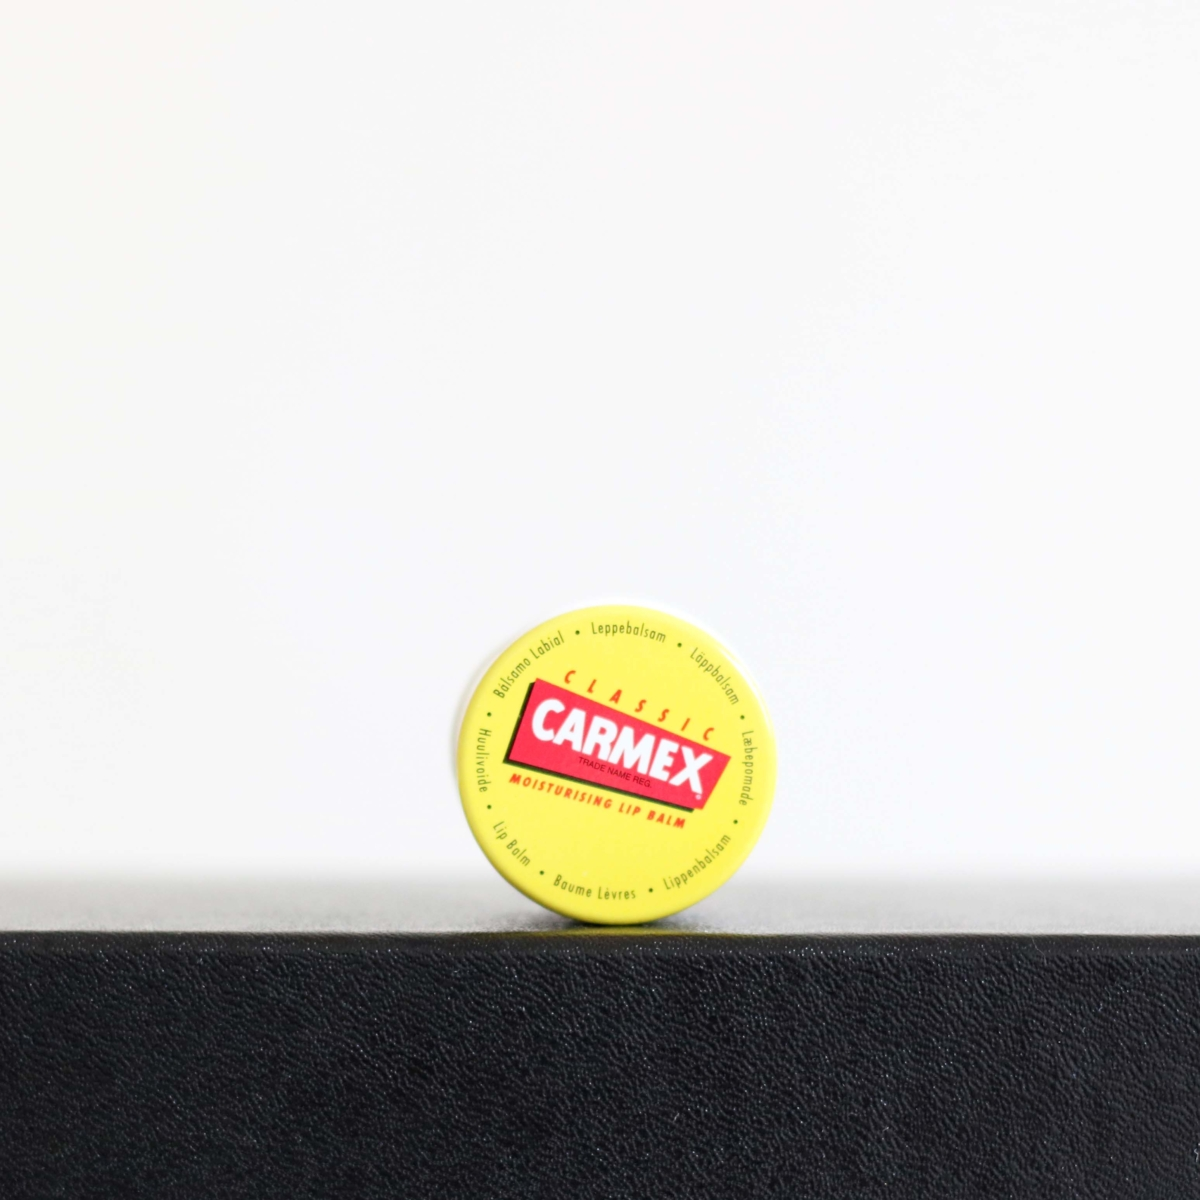 Latest in Beauty Build Your Own Box Review - Camex Lip Balm